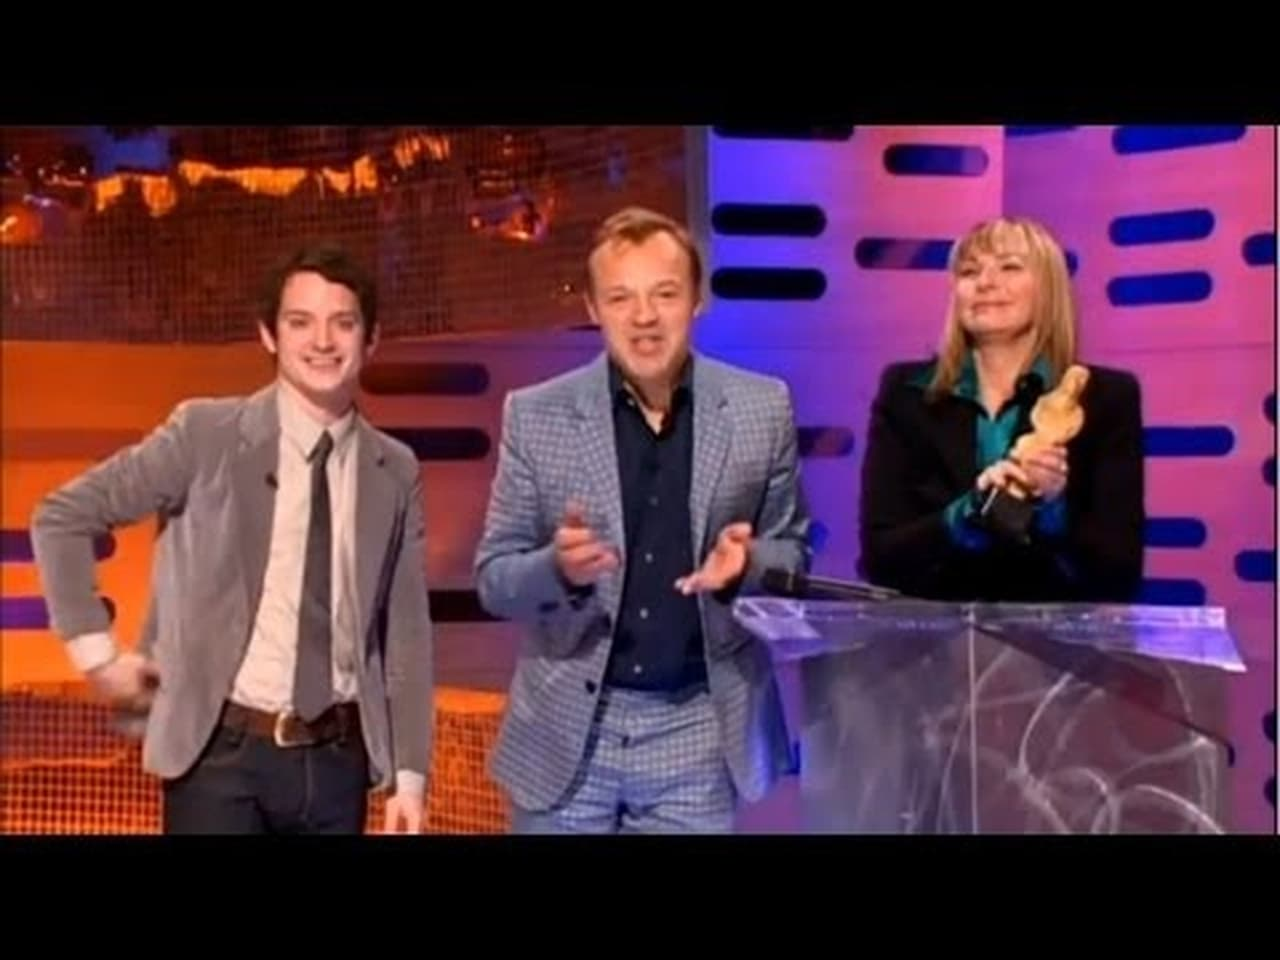 The Graham Norton Show - Season 1 Episode 1 : Elijah Wood, Kim Cattrall and Heloise and the Savoir Faire (2021)